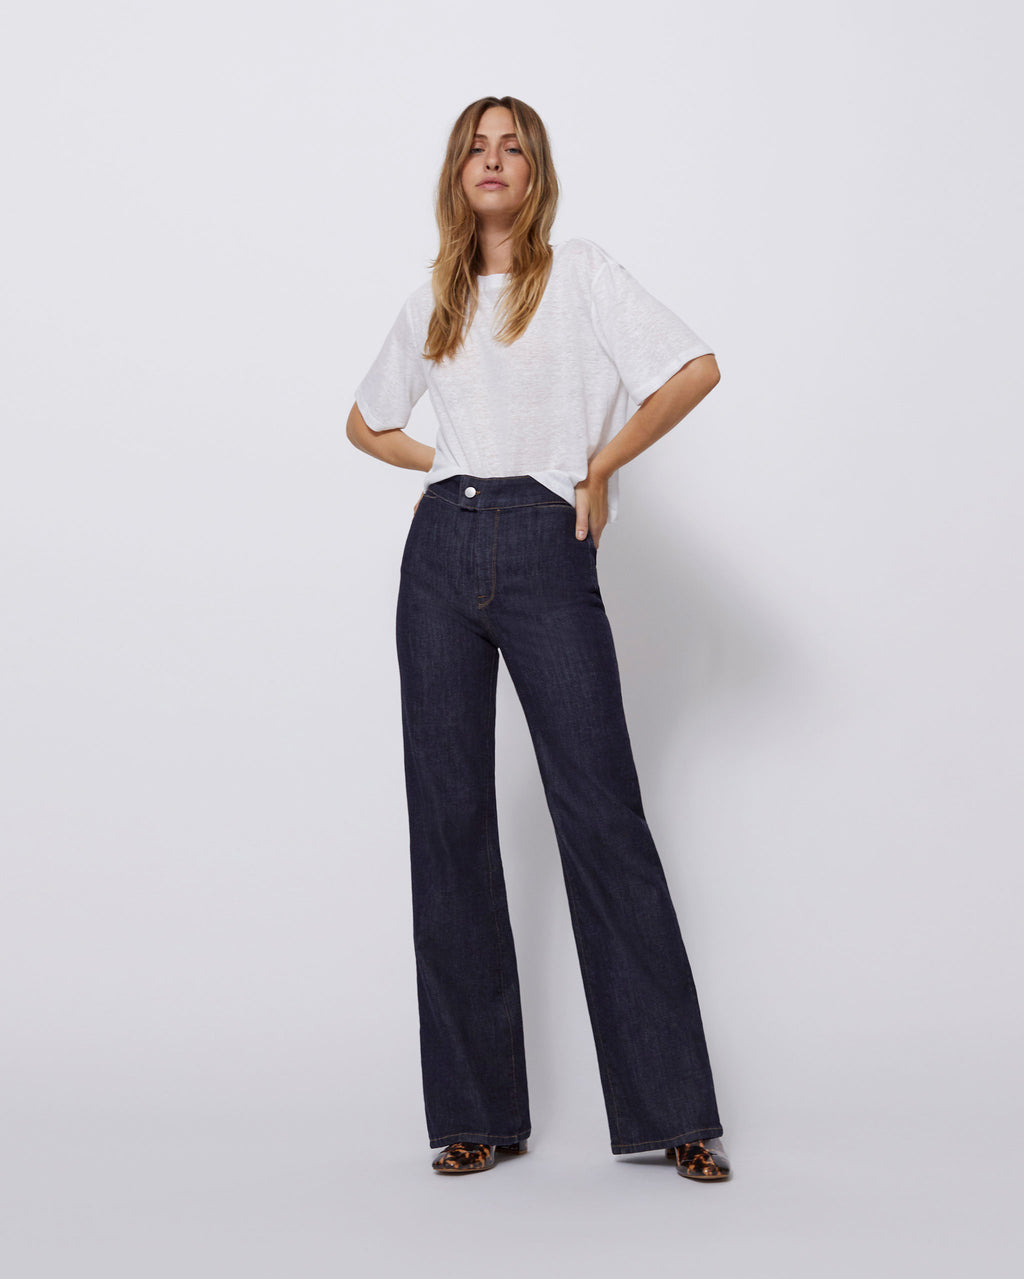 The Piper Pant in Abyss